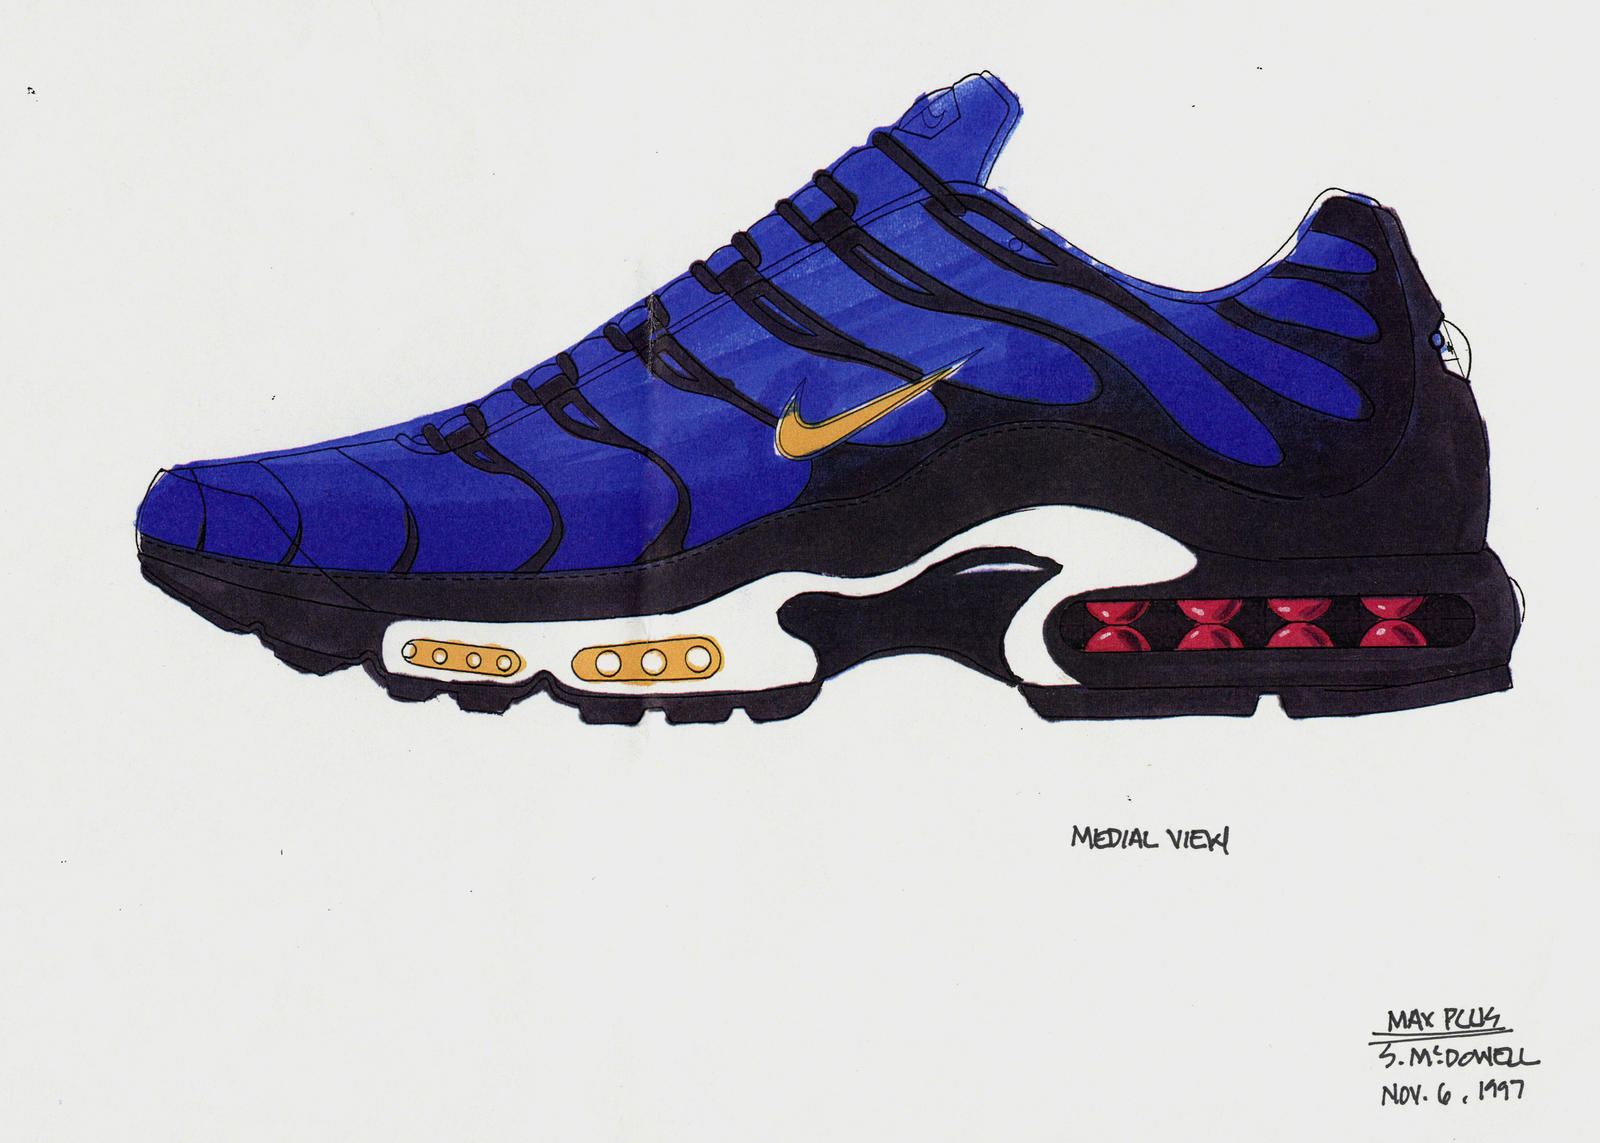 9c011b0a79 The Untold Story of the Nike Air Max Plus 27